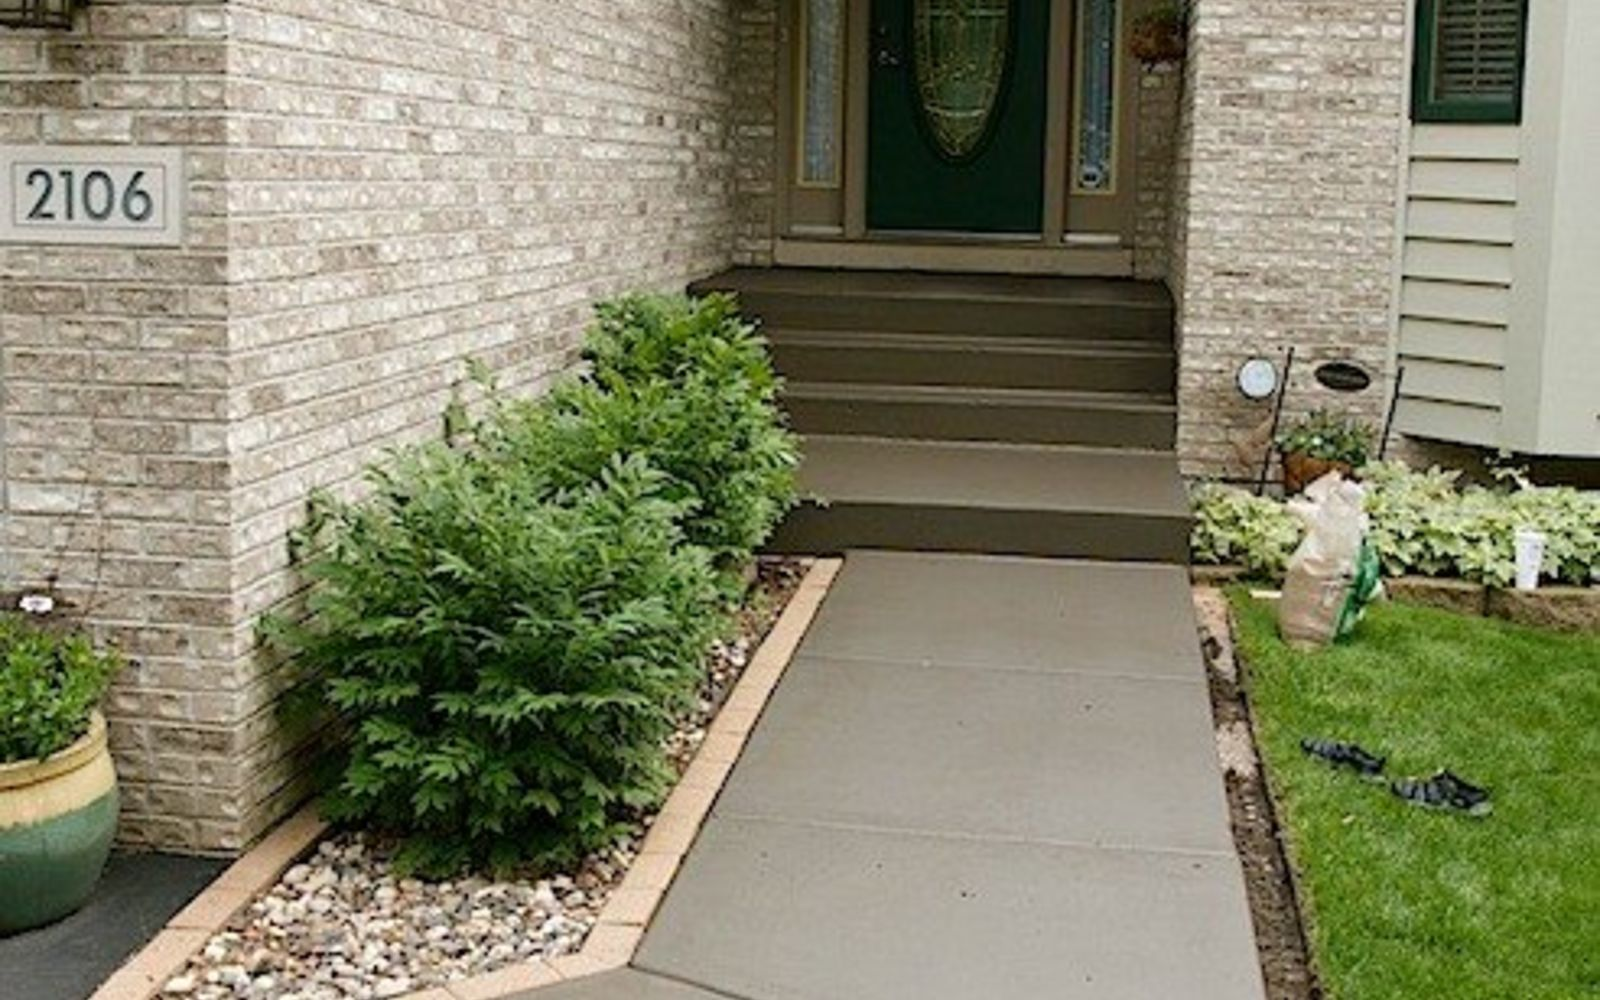 curb appeal ideas for front yards quick easy huge impact raised ranch style homes pinterest